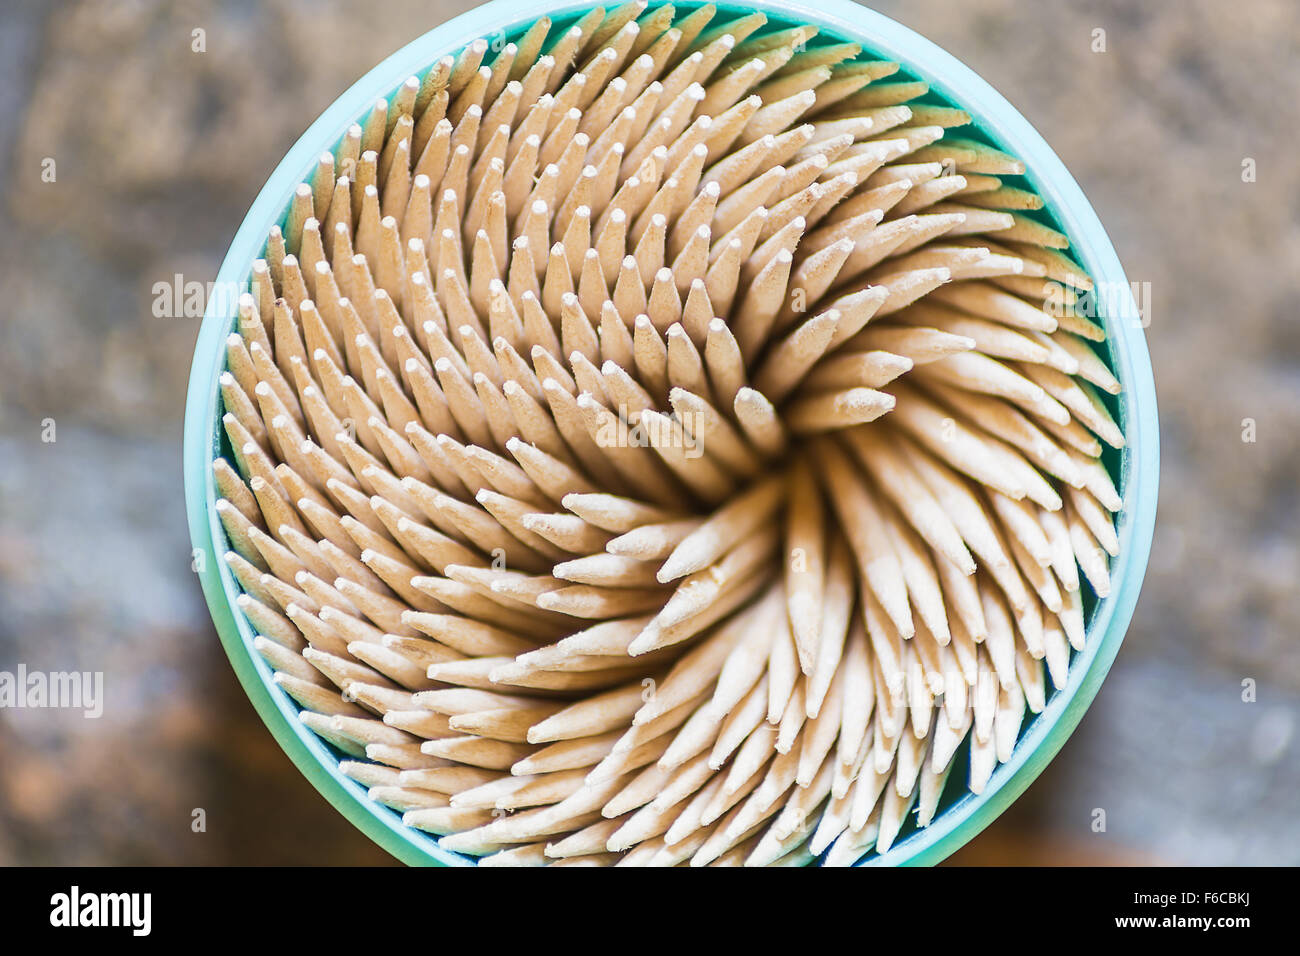 a bunch of toothpicks in a round box - Stock Image